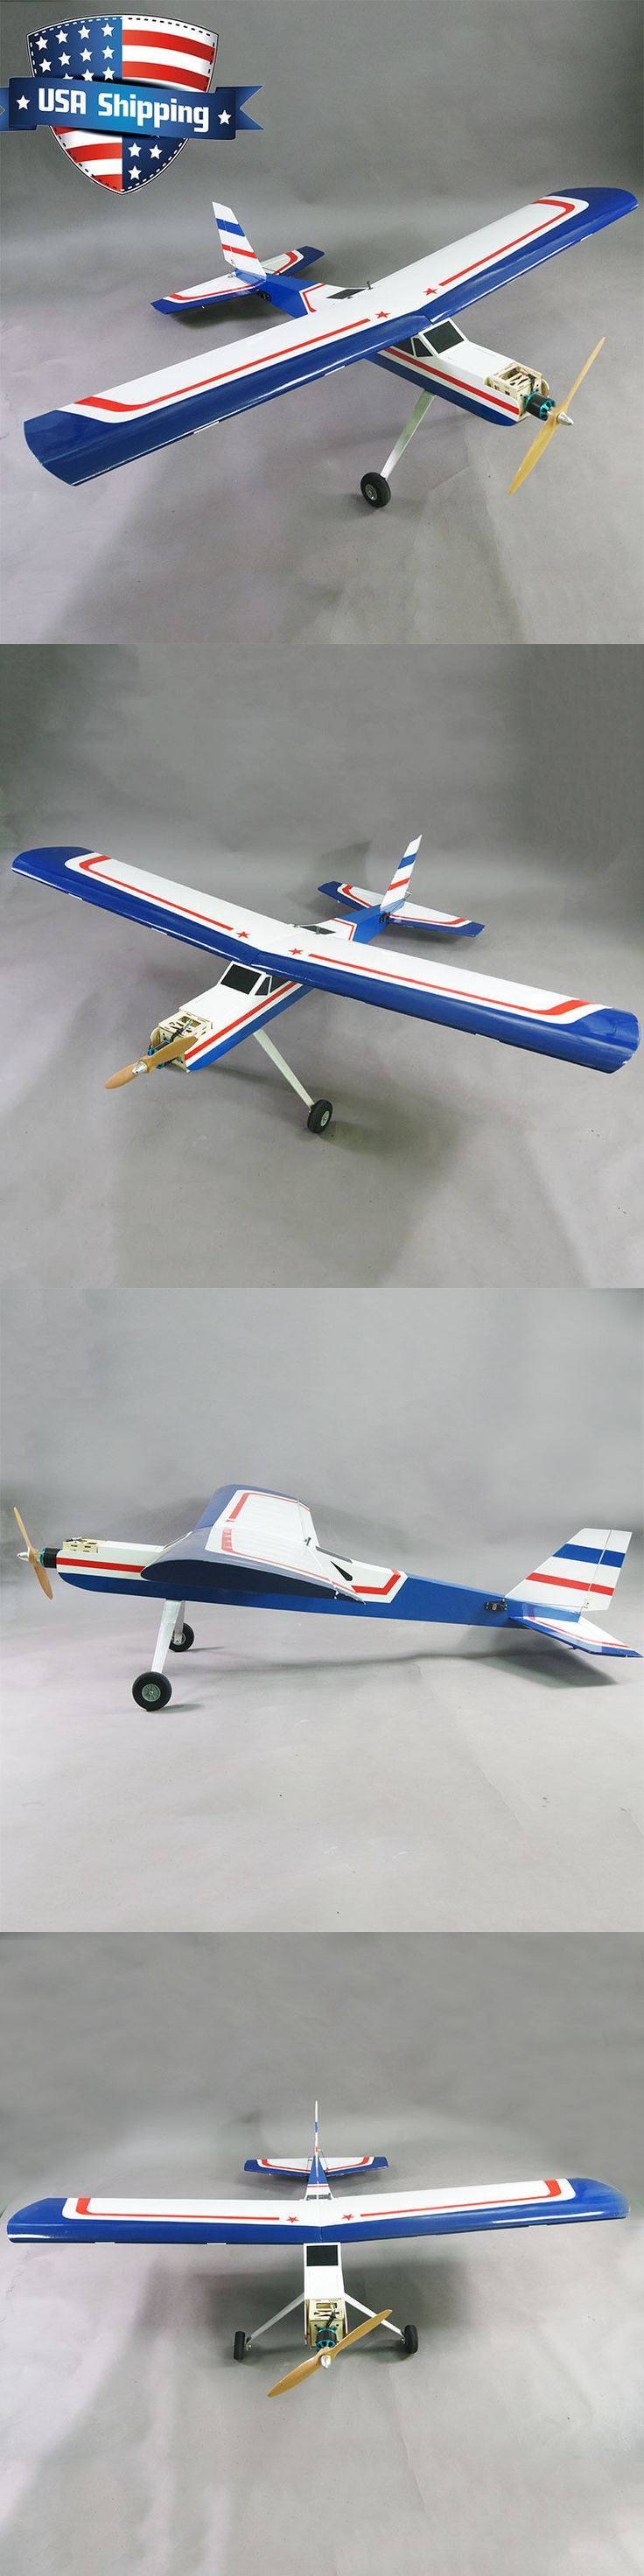 Airplanes 182182: 73In Giant Aviator 75-90 Nitro 20Cc Gas Balsa Rc Trainer Airplane Arf Kit -> BUY IT NOW ONLY: $99.99 on eBay!